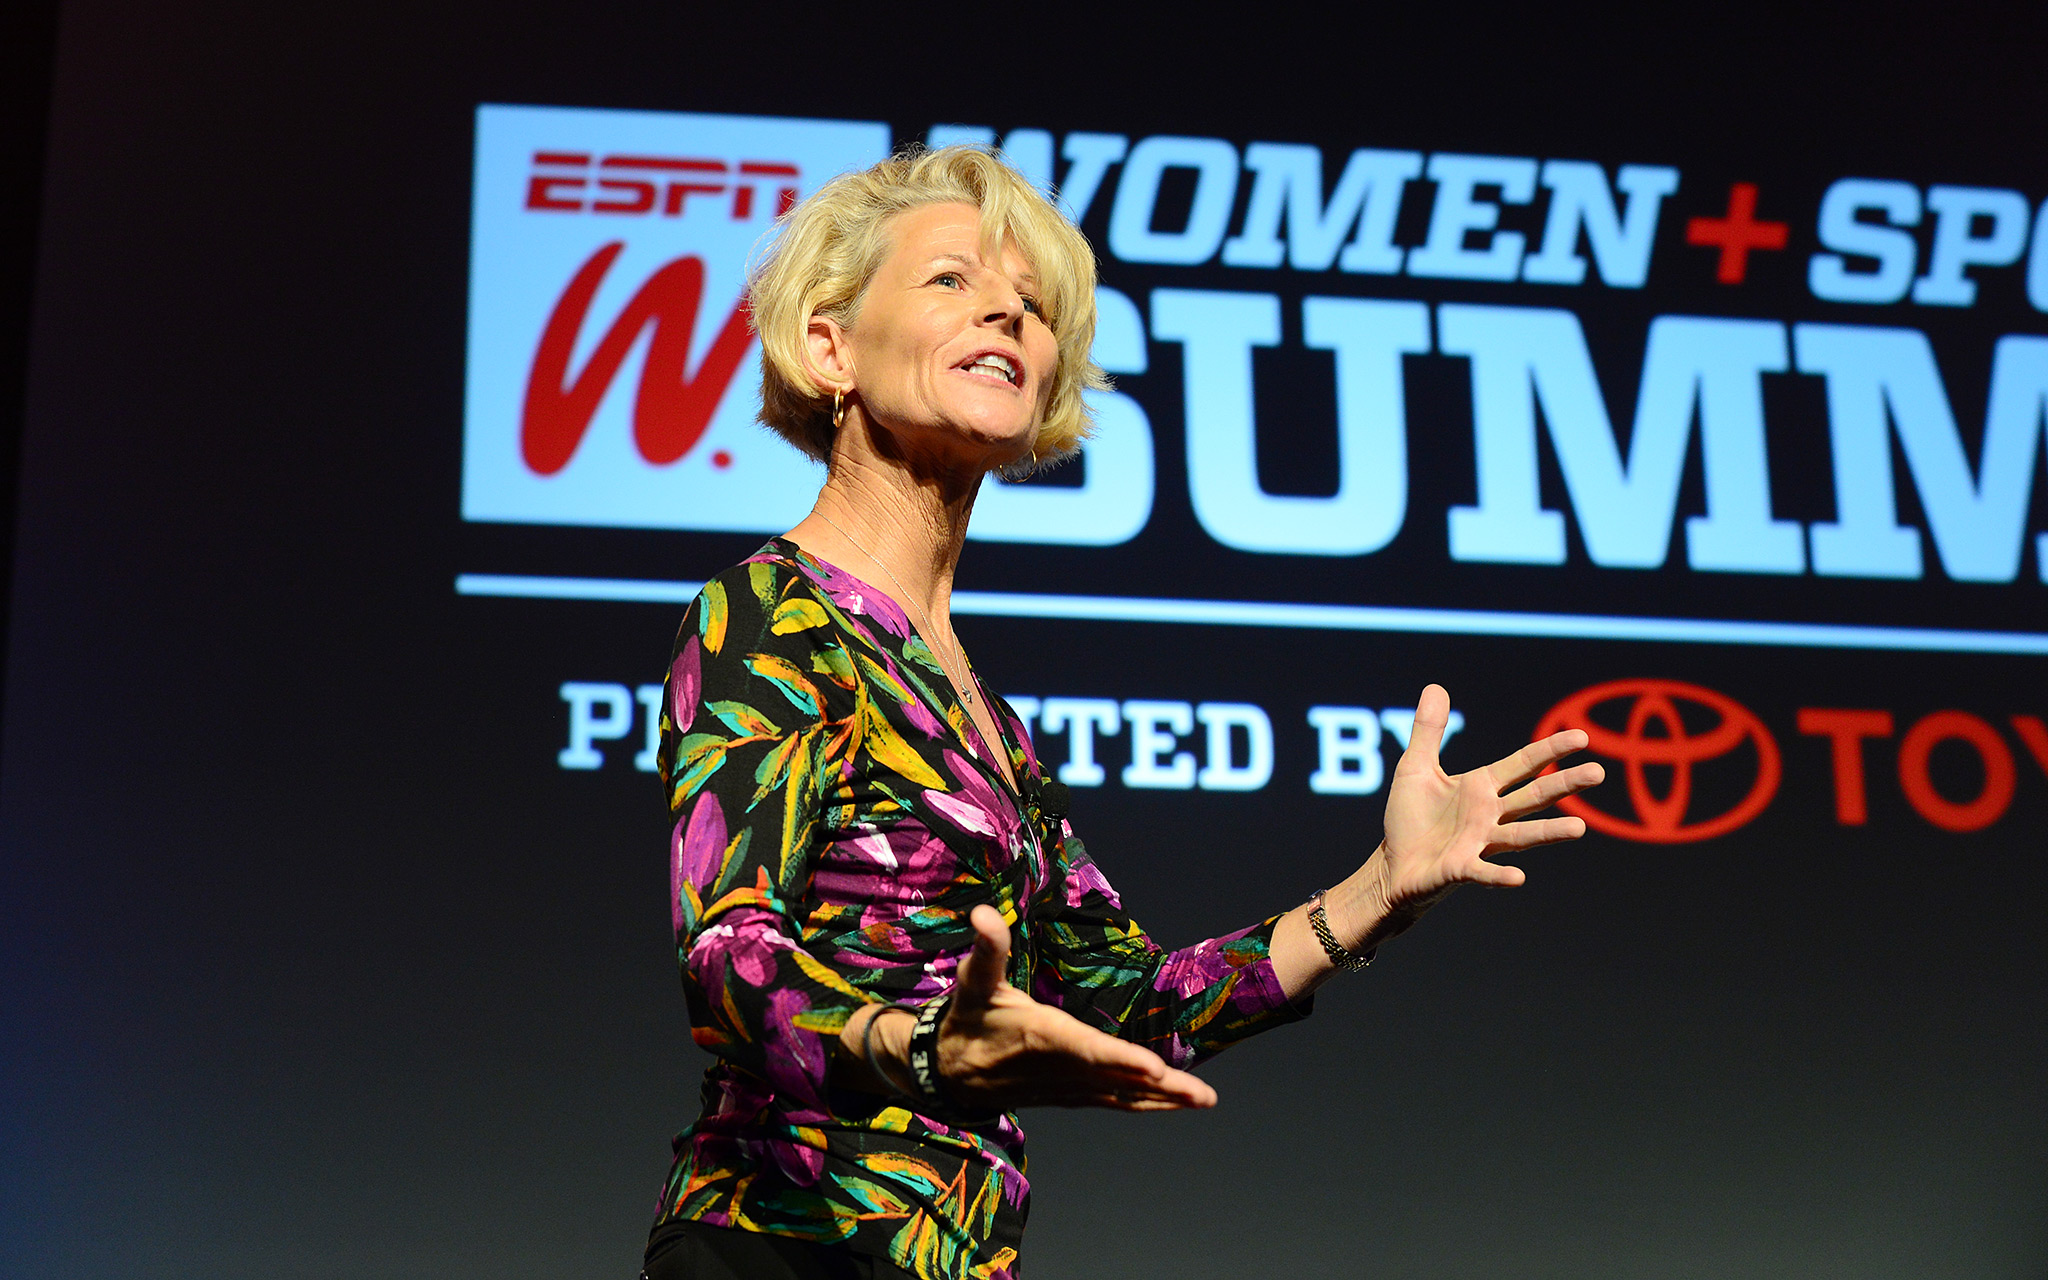 Sue Enquist's Power Talk focused on chasing excellence and how women have to avoid being their own worst enemy (hello, inner voice!). Money quote: Don't get stuck in your junk.